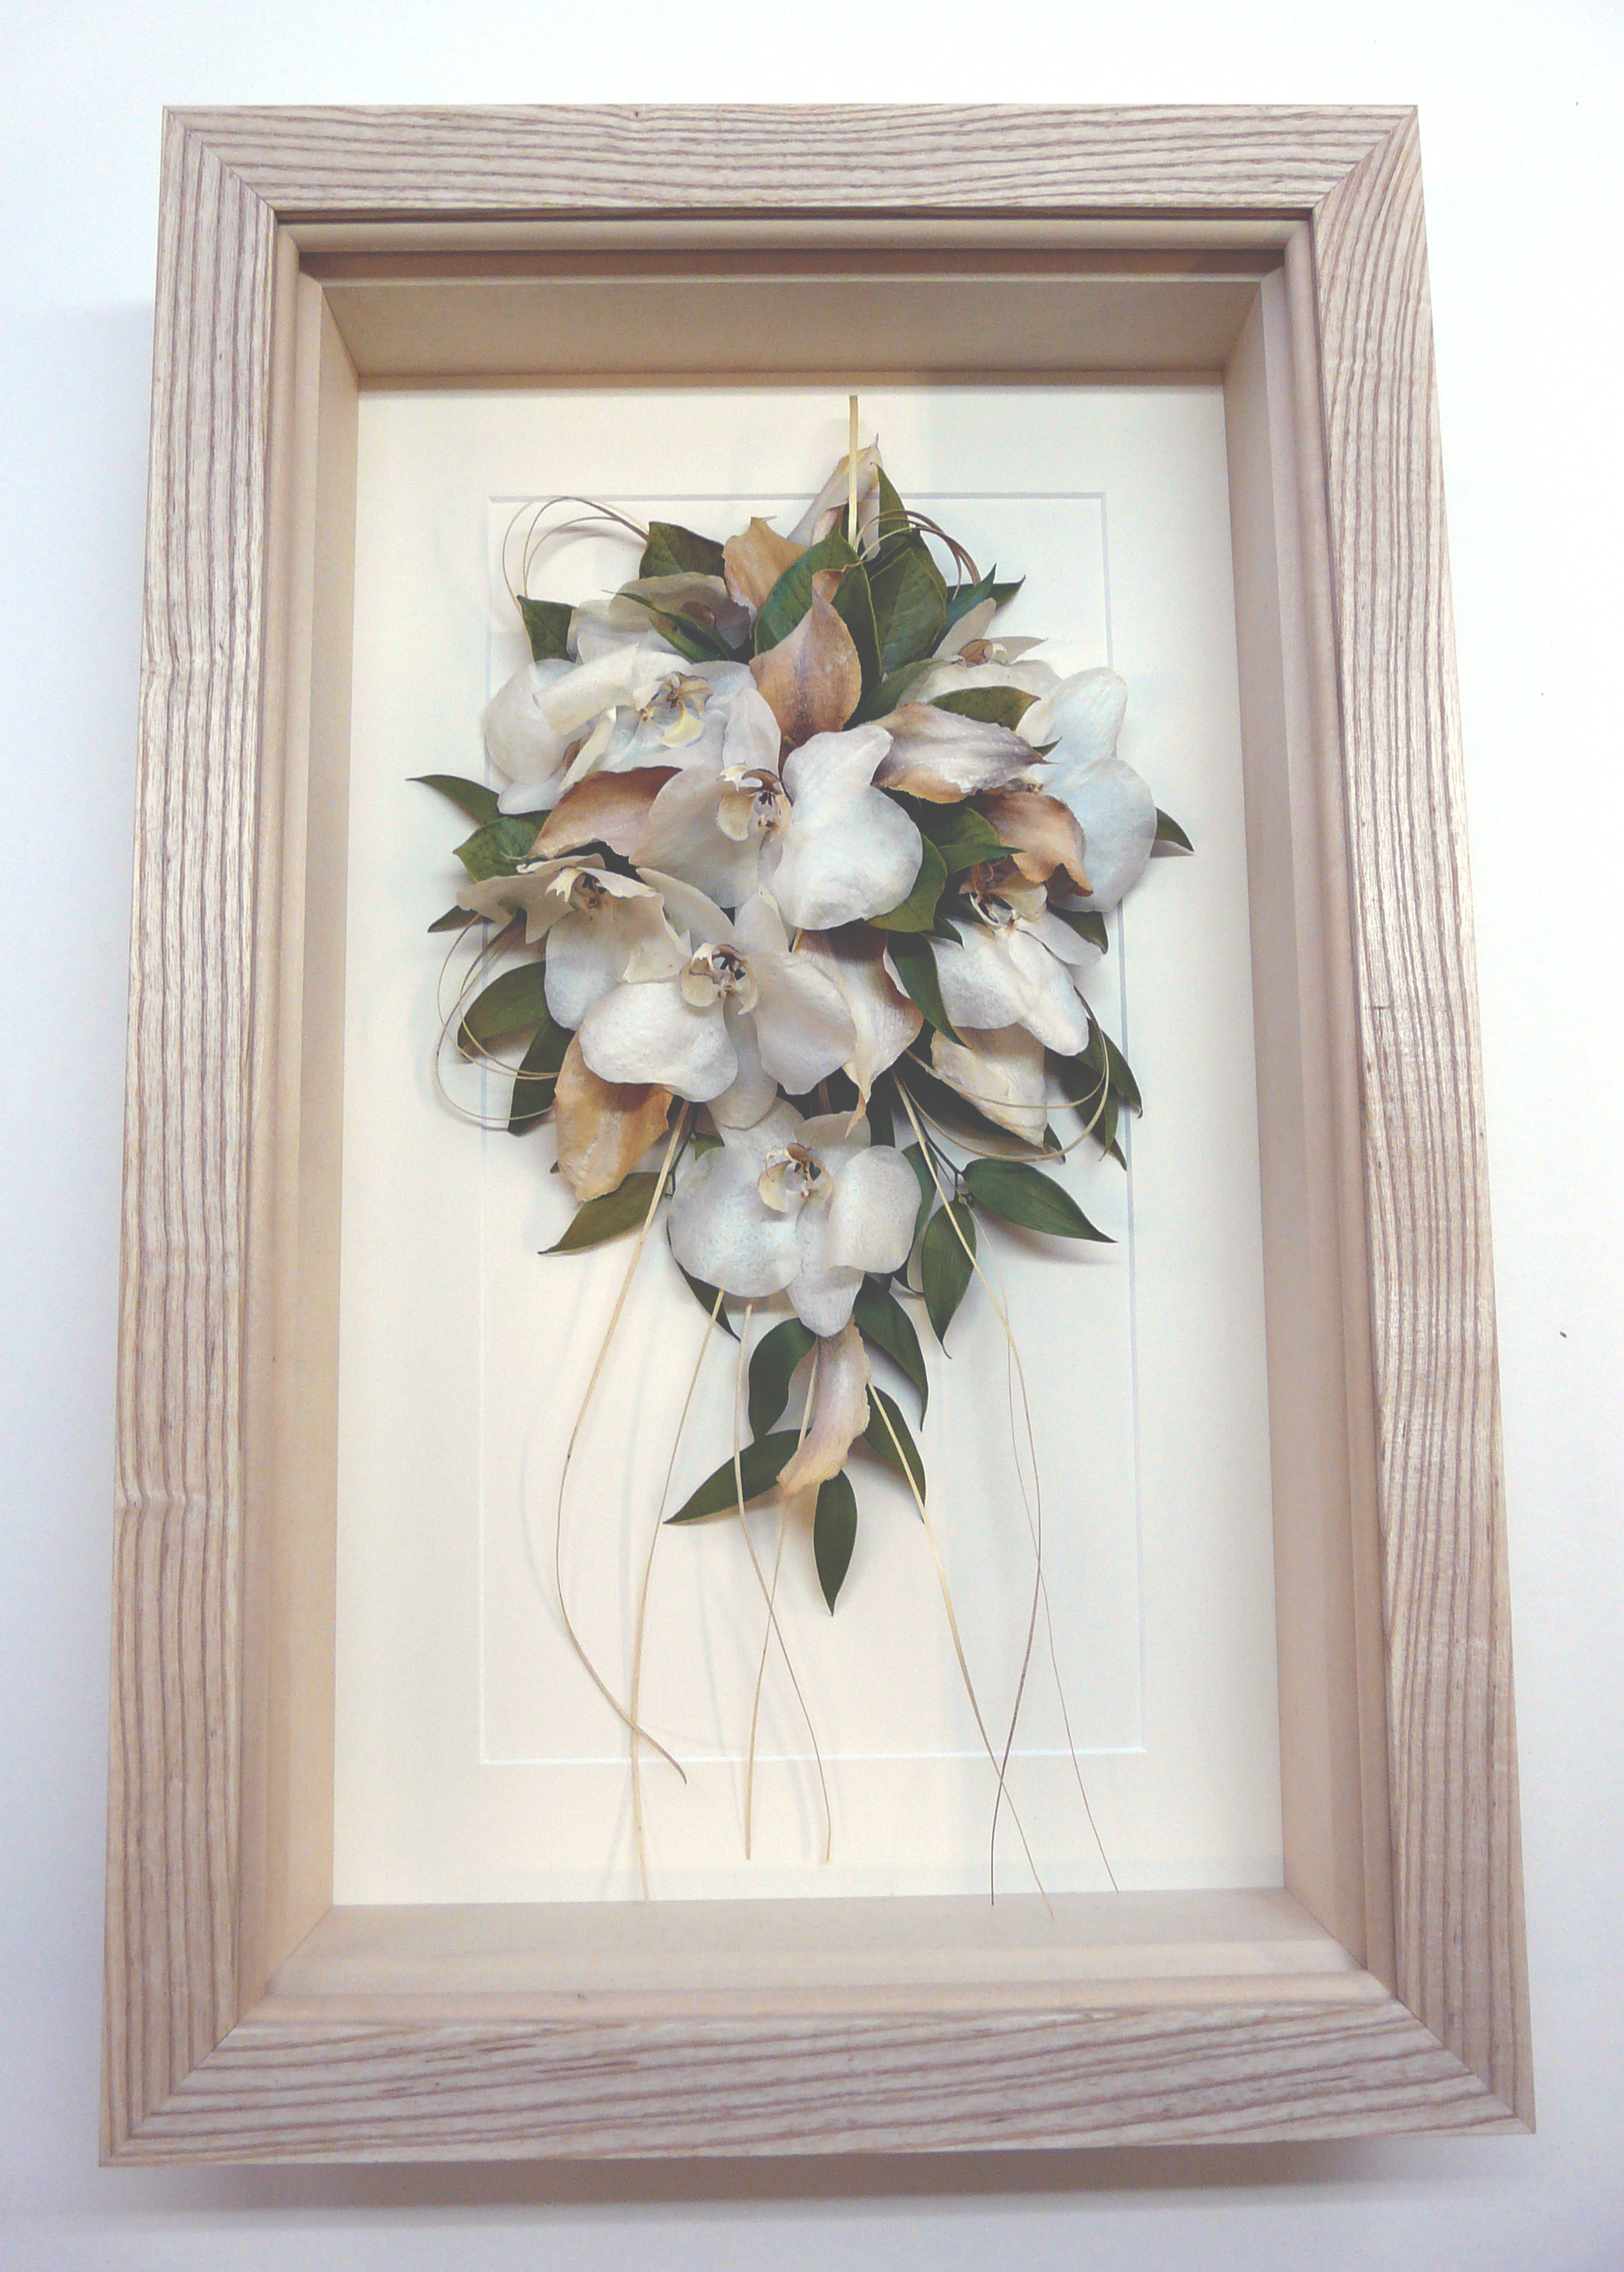 Wedding Flowers Pressed Framed: Floral art from real pressed flowers ...